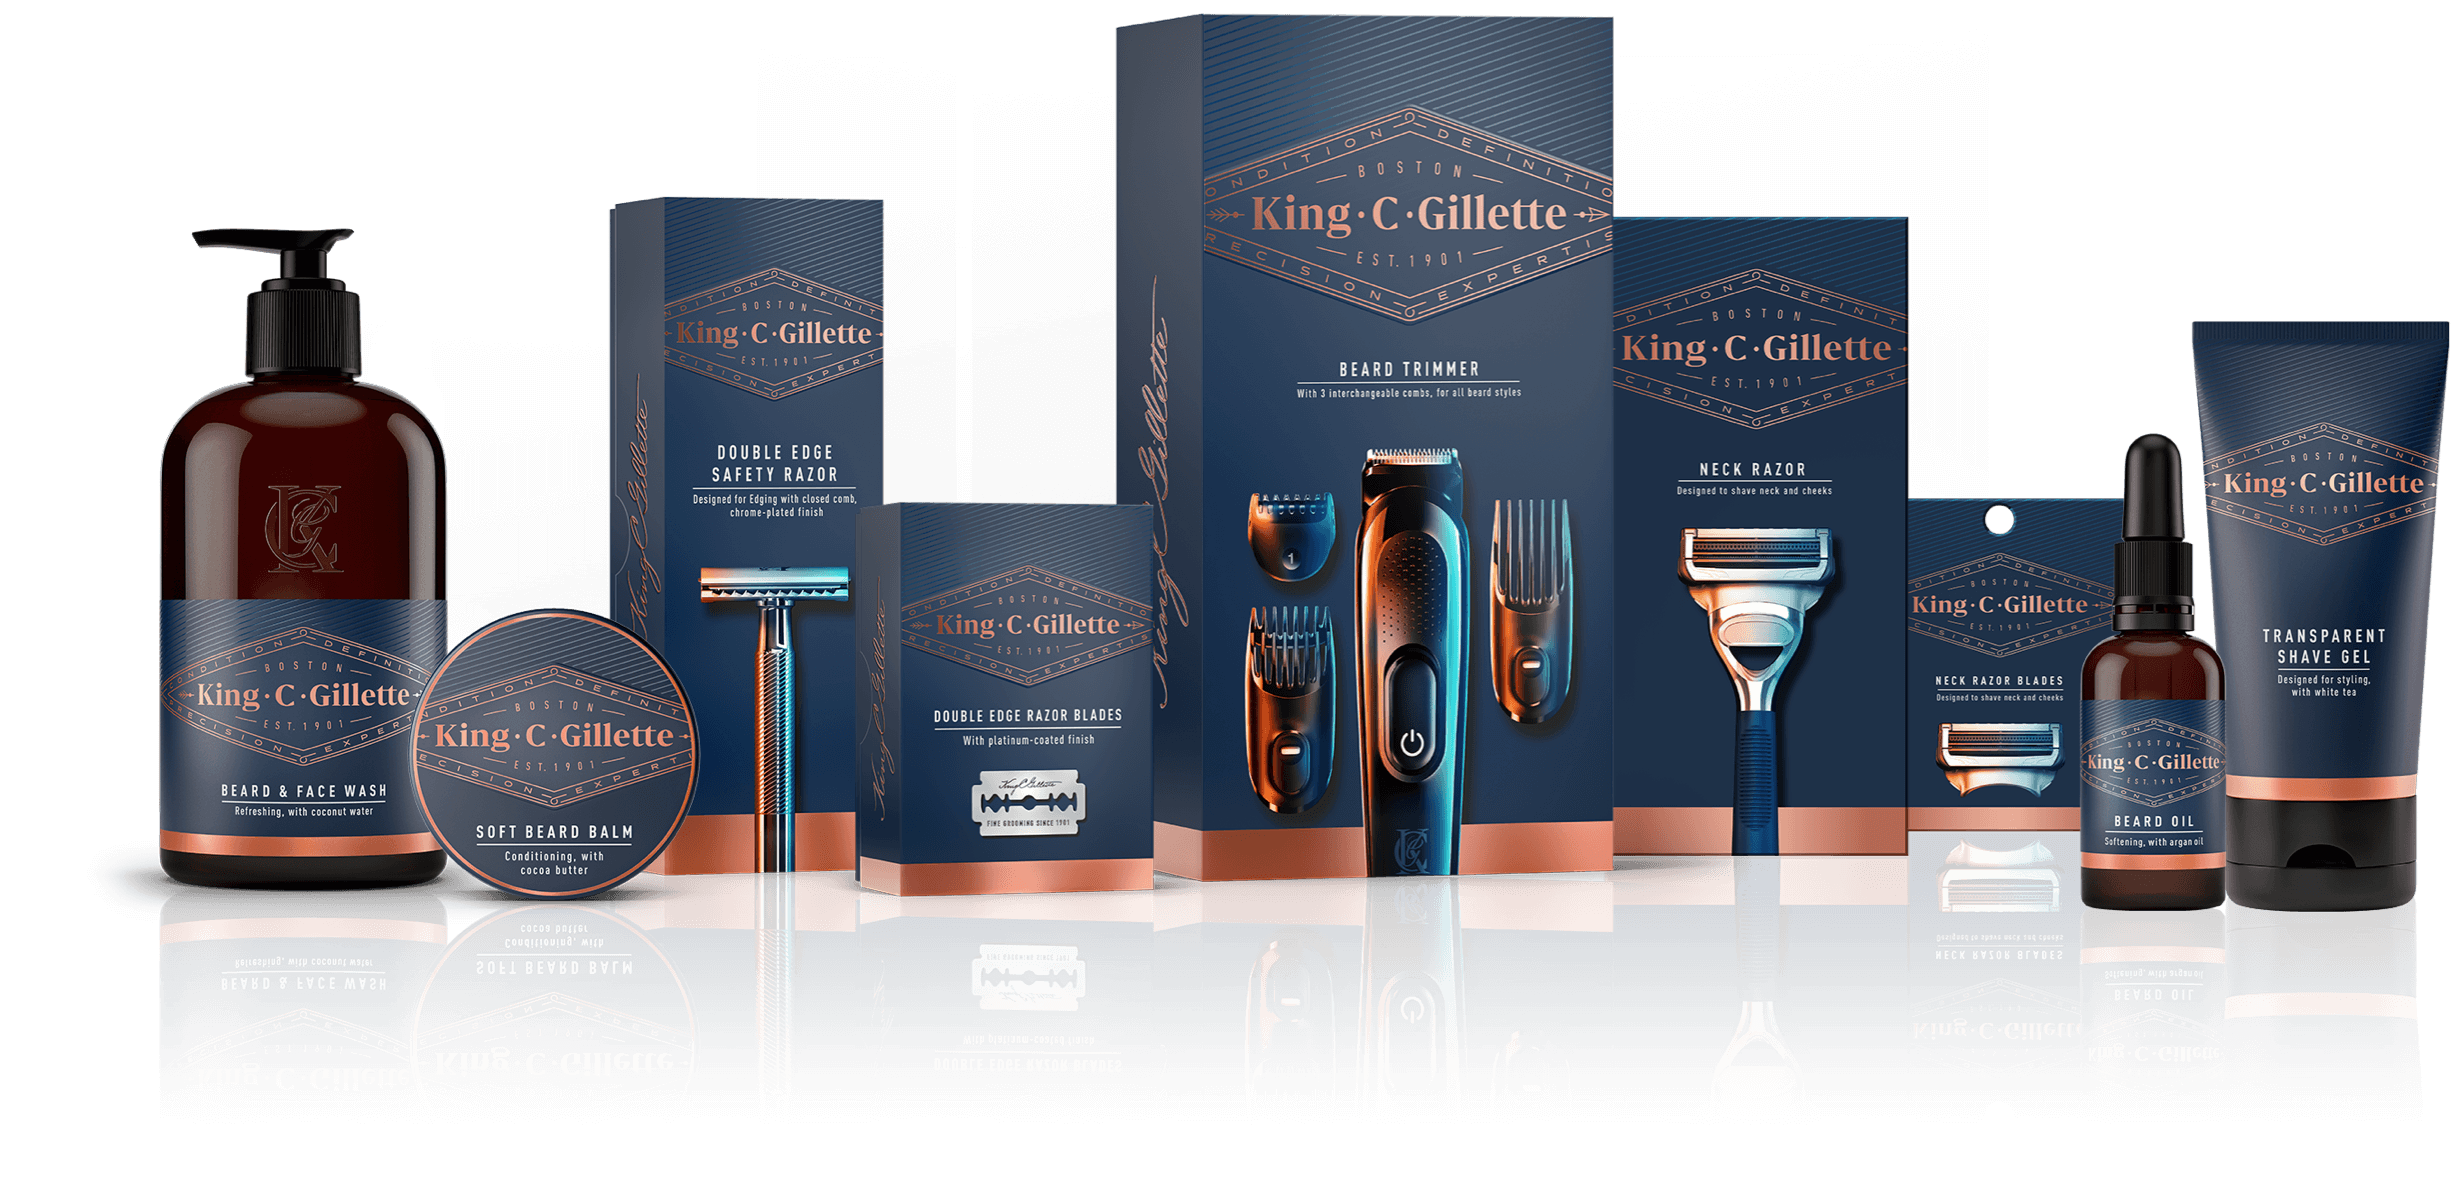 King C. Gillette line of grooming products